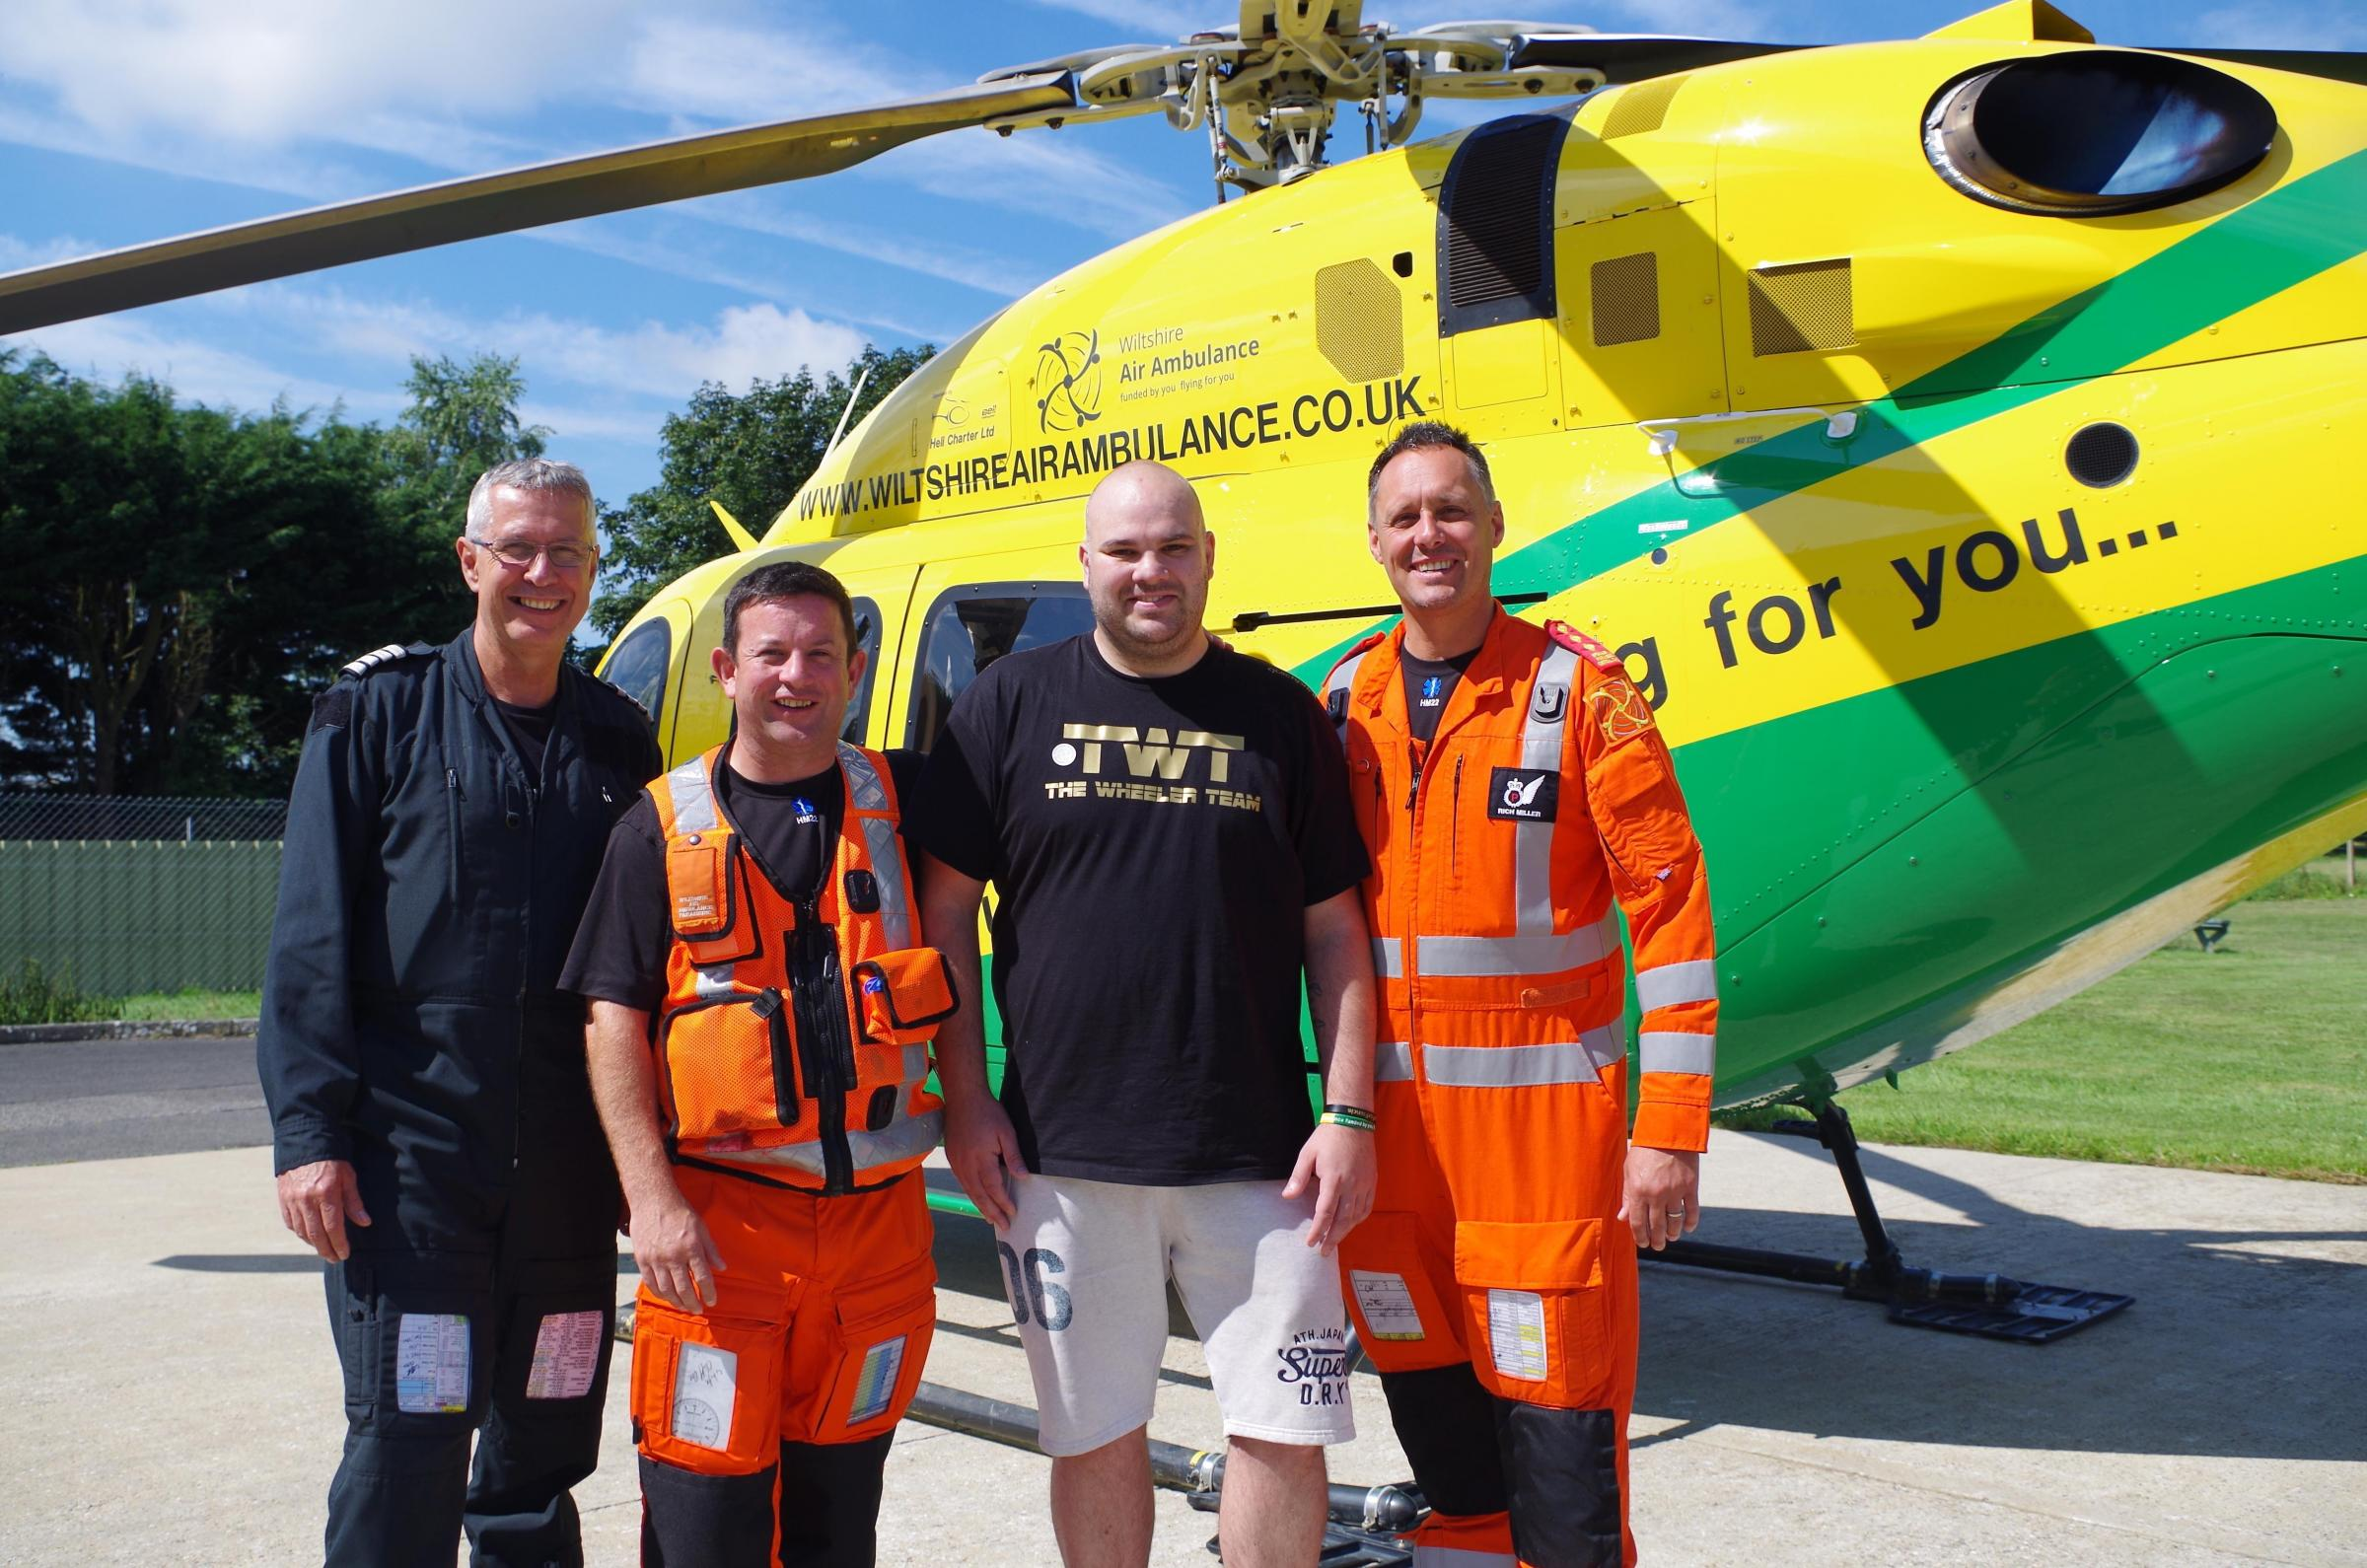 Kieron Reeson (third from left) with the Wiltshire Air Ambulance Crew who attended him, Pilot George Lawrence and Paramedics Fred Thompson and Richard Miller.